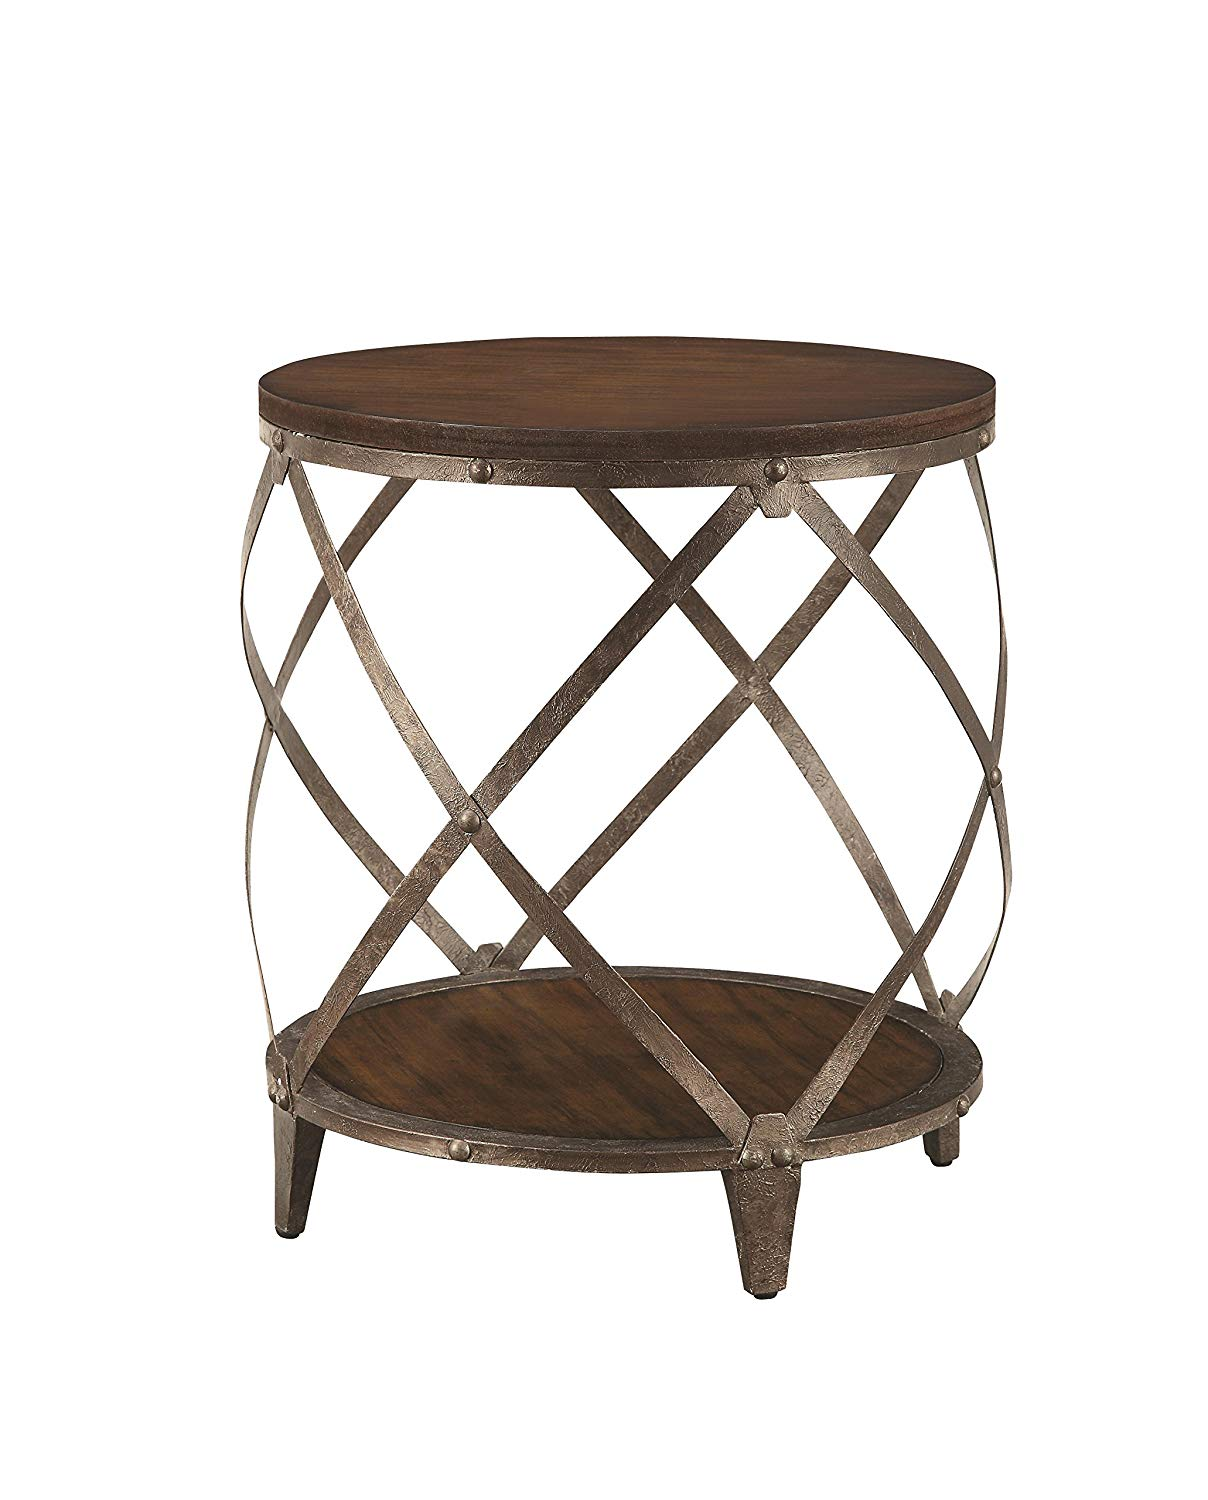 metal accent table with drum shape brown kitchen dining contemporary round vintage beach decor half circle sofa black wire coffee accents small oak how met your mother umbrella